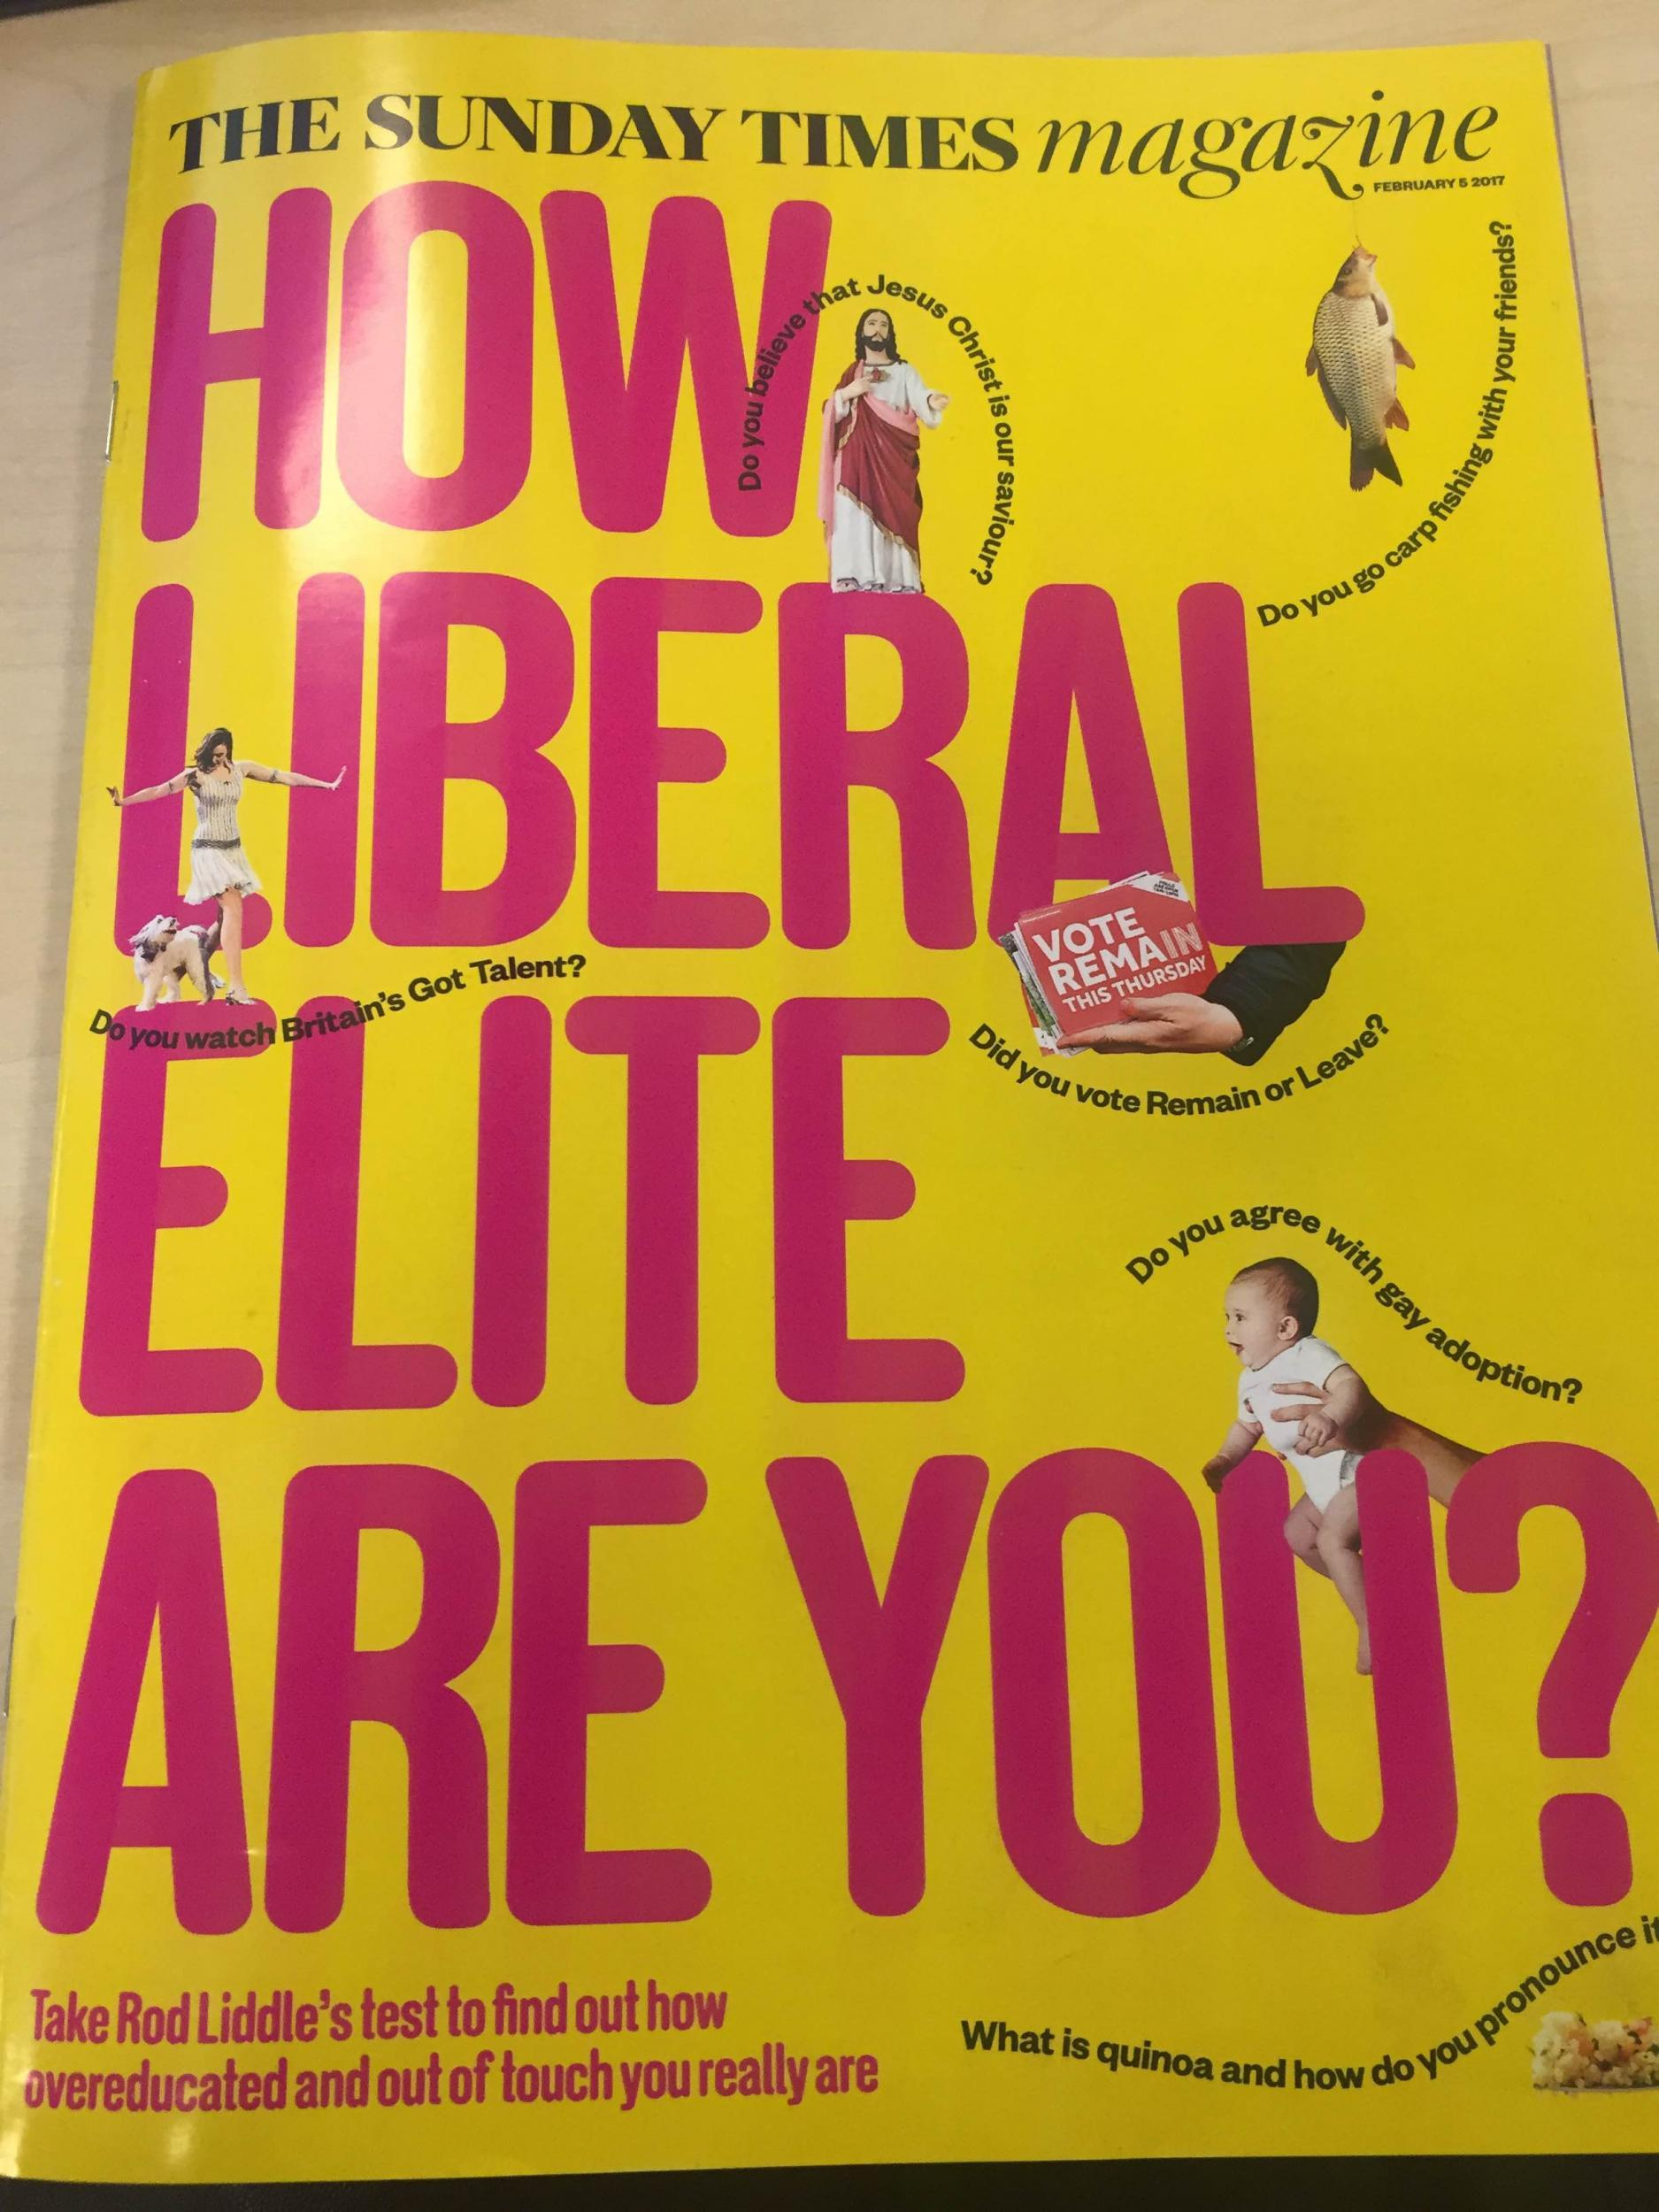 If you can answer these 5 questions correctly Rod Liddle thinks you